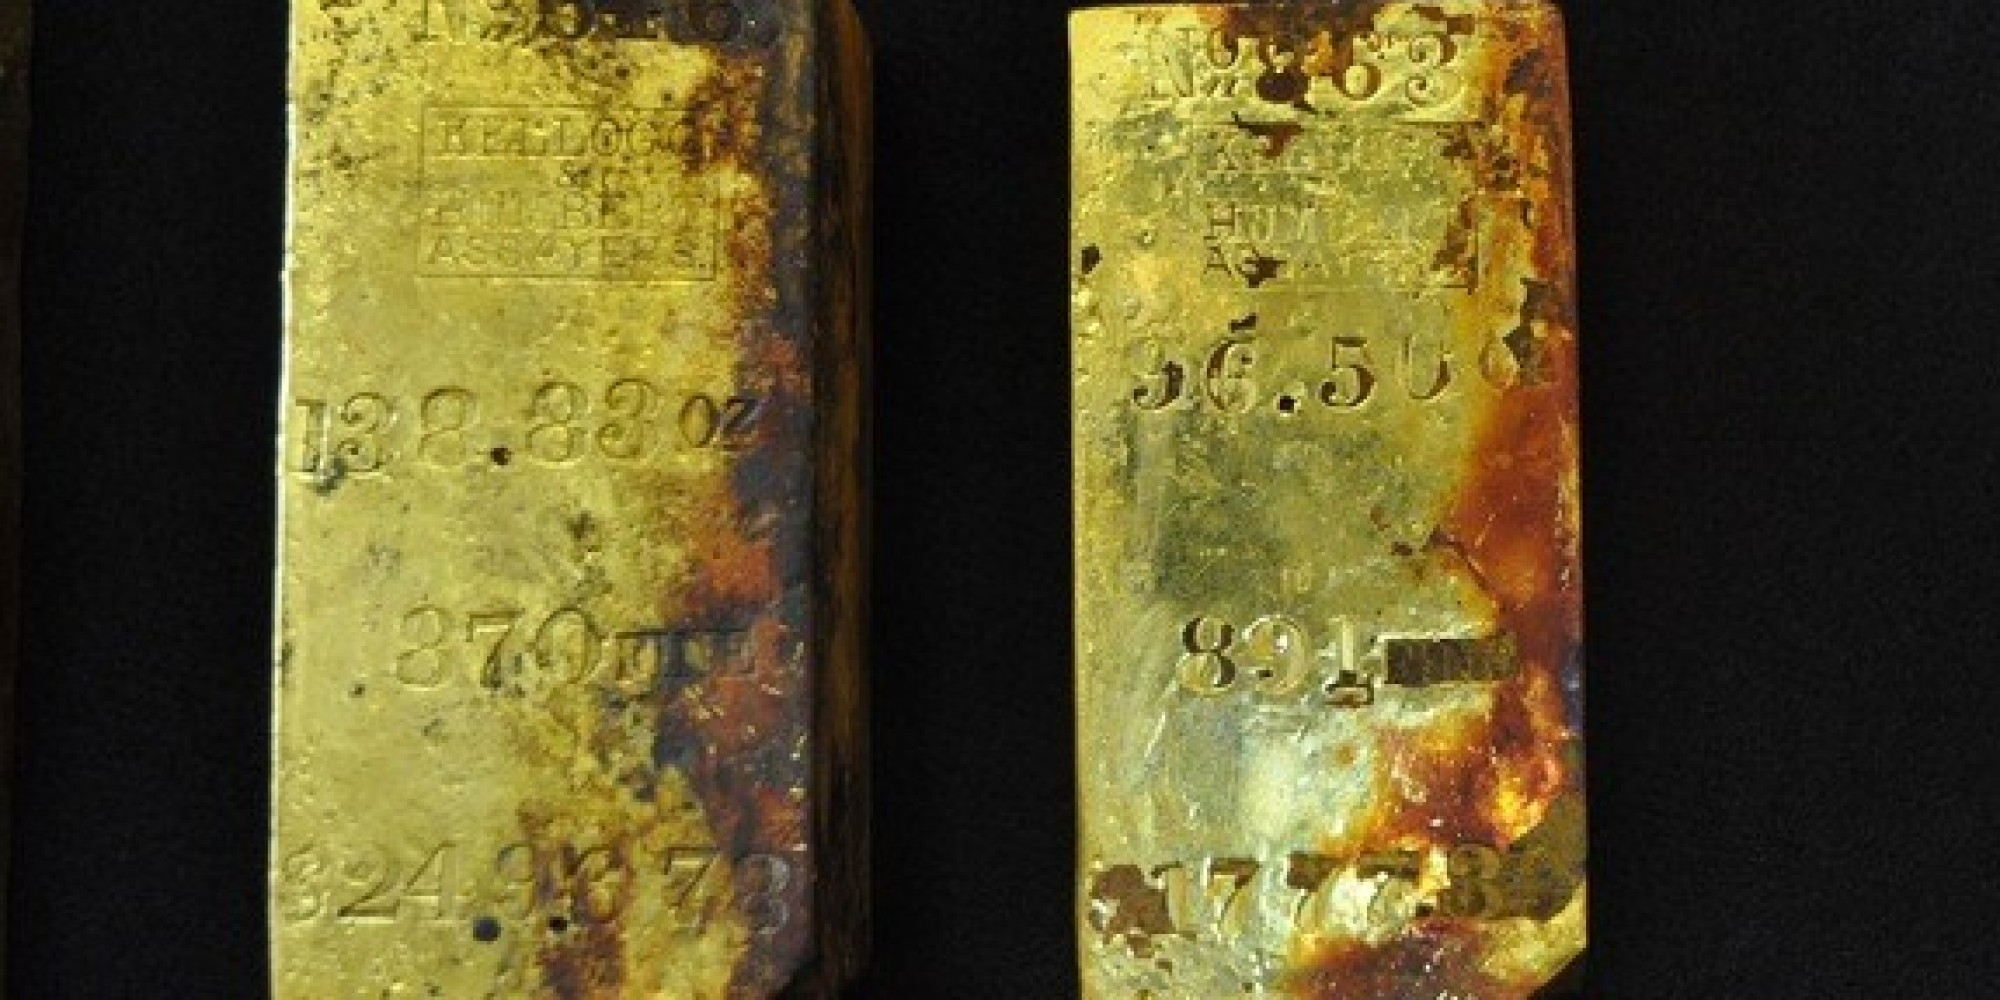 About $300 million worth of gold could soon be recovered fro.